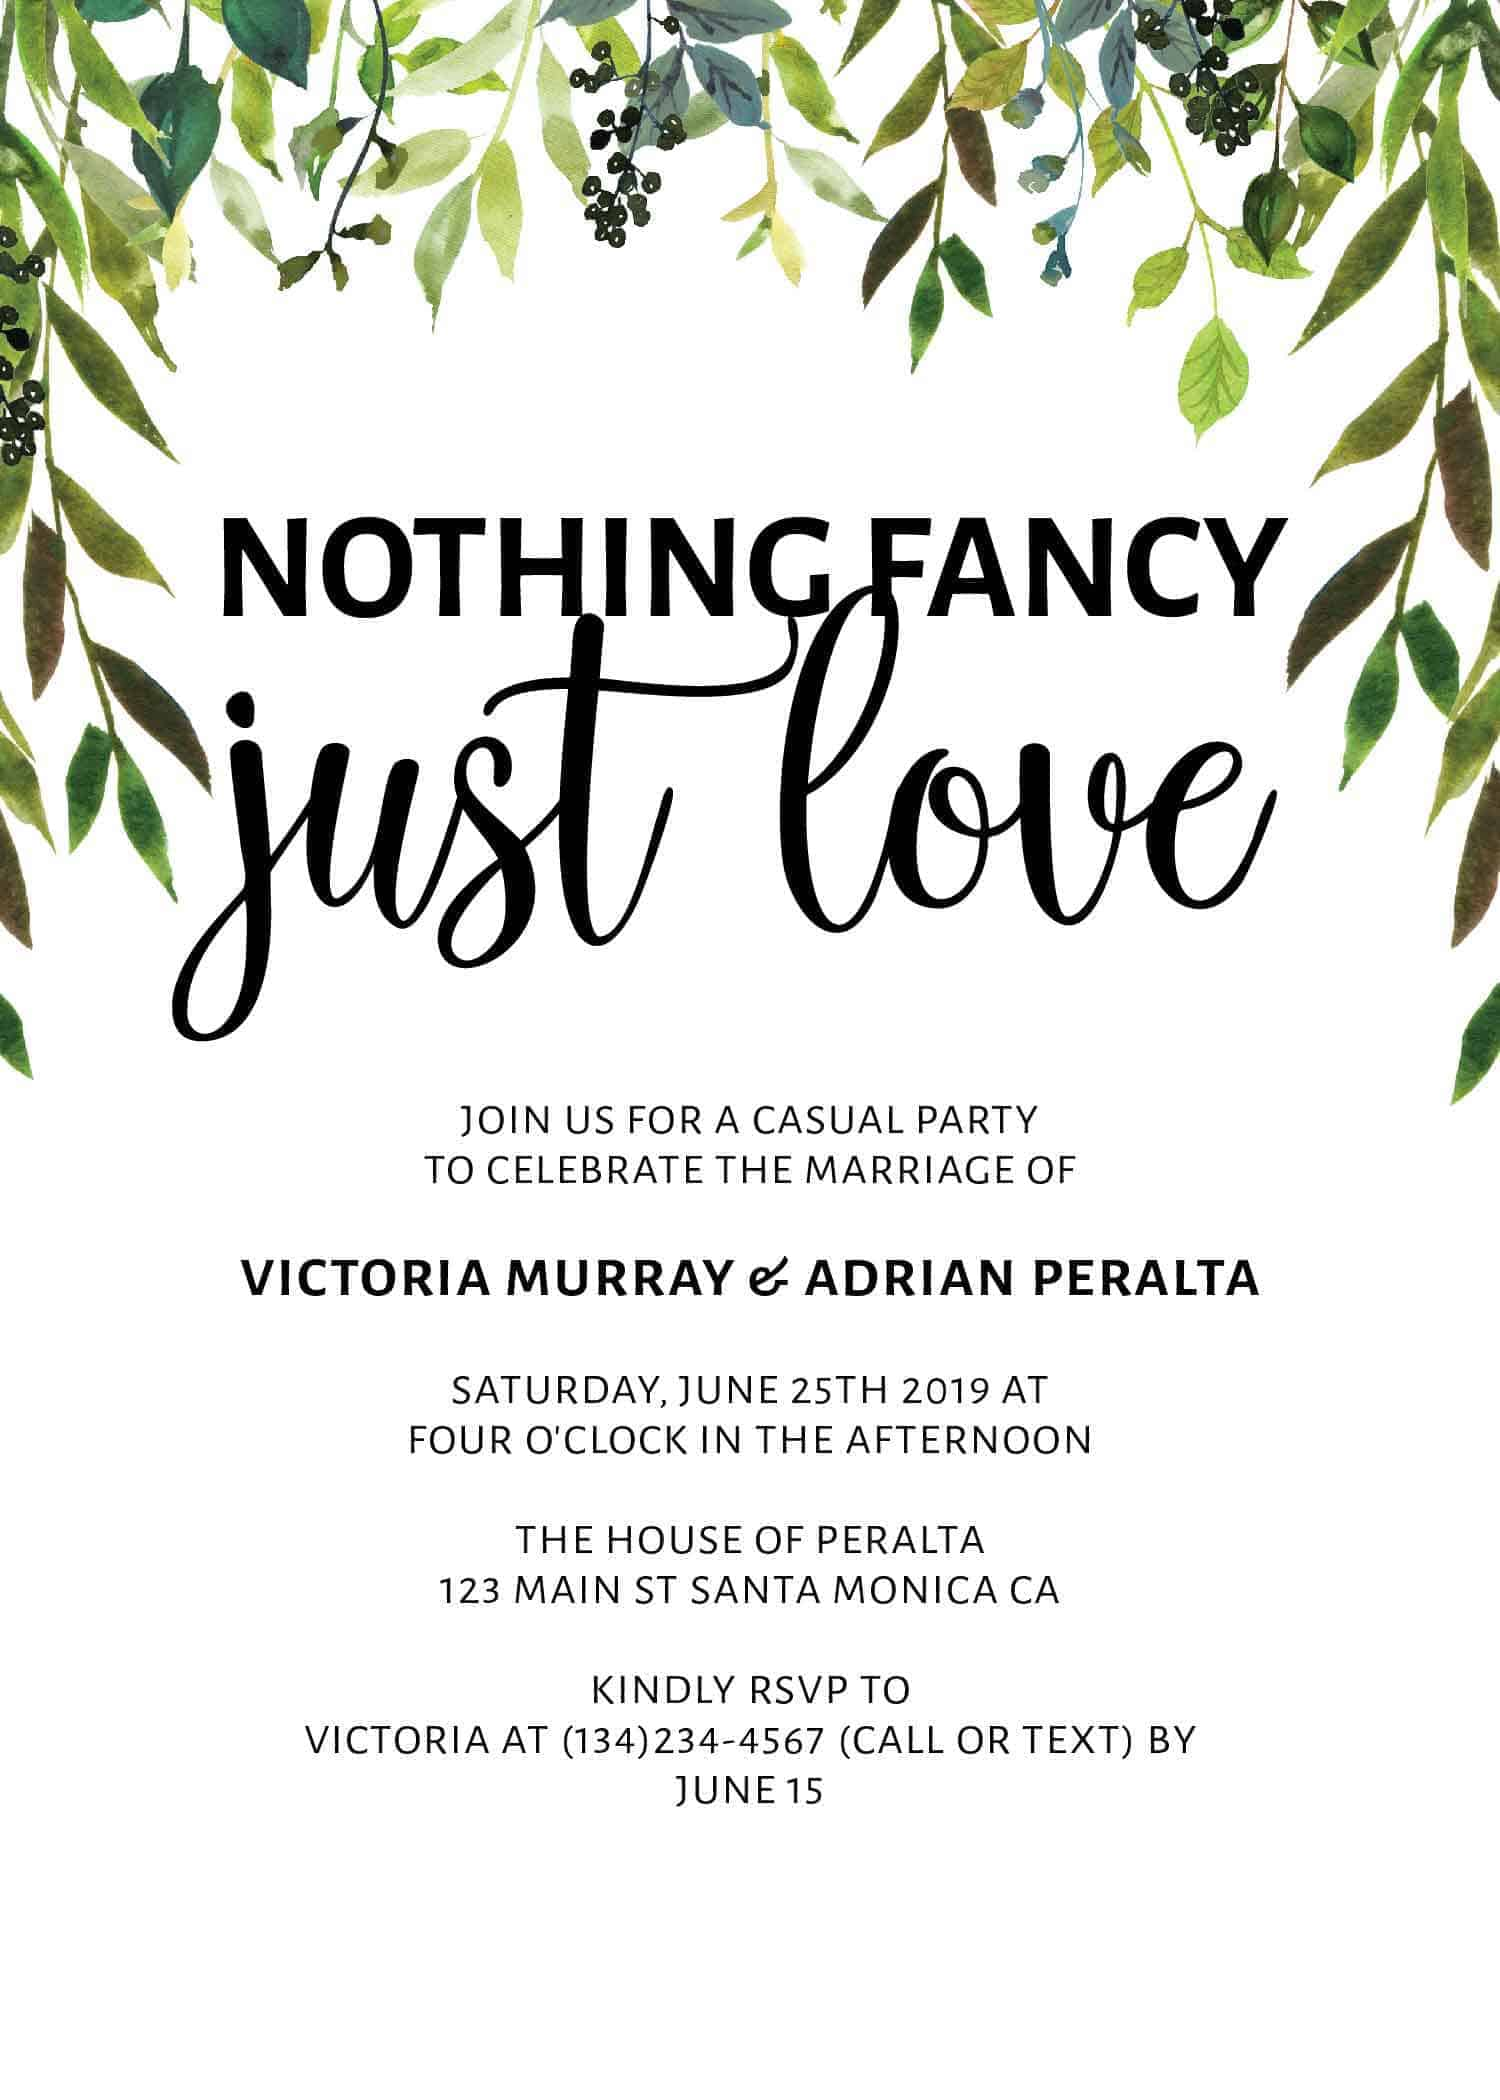 Nothing Fancy Just Love, Elopement Announcement, Casual Wedding Announcement Cards, Printed Printable Wedding Flat Card elopement261